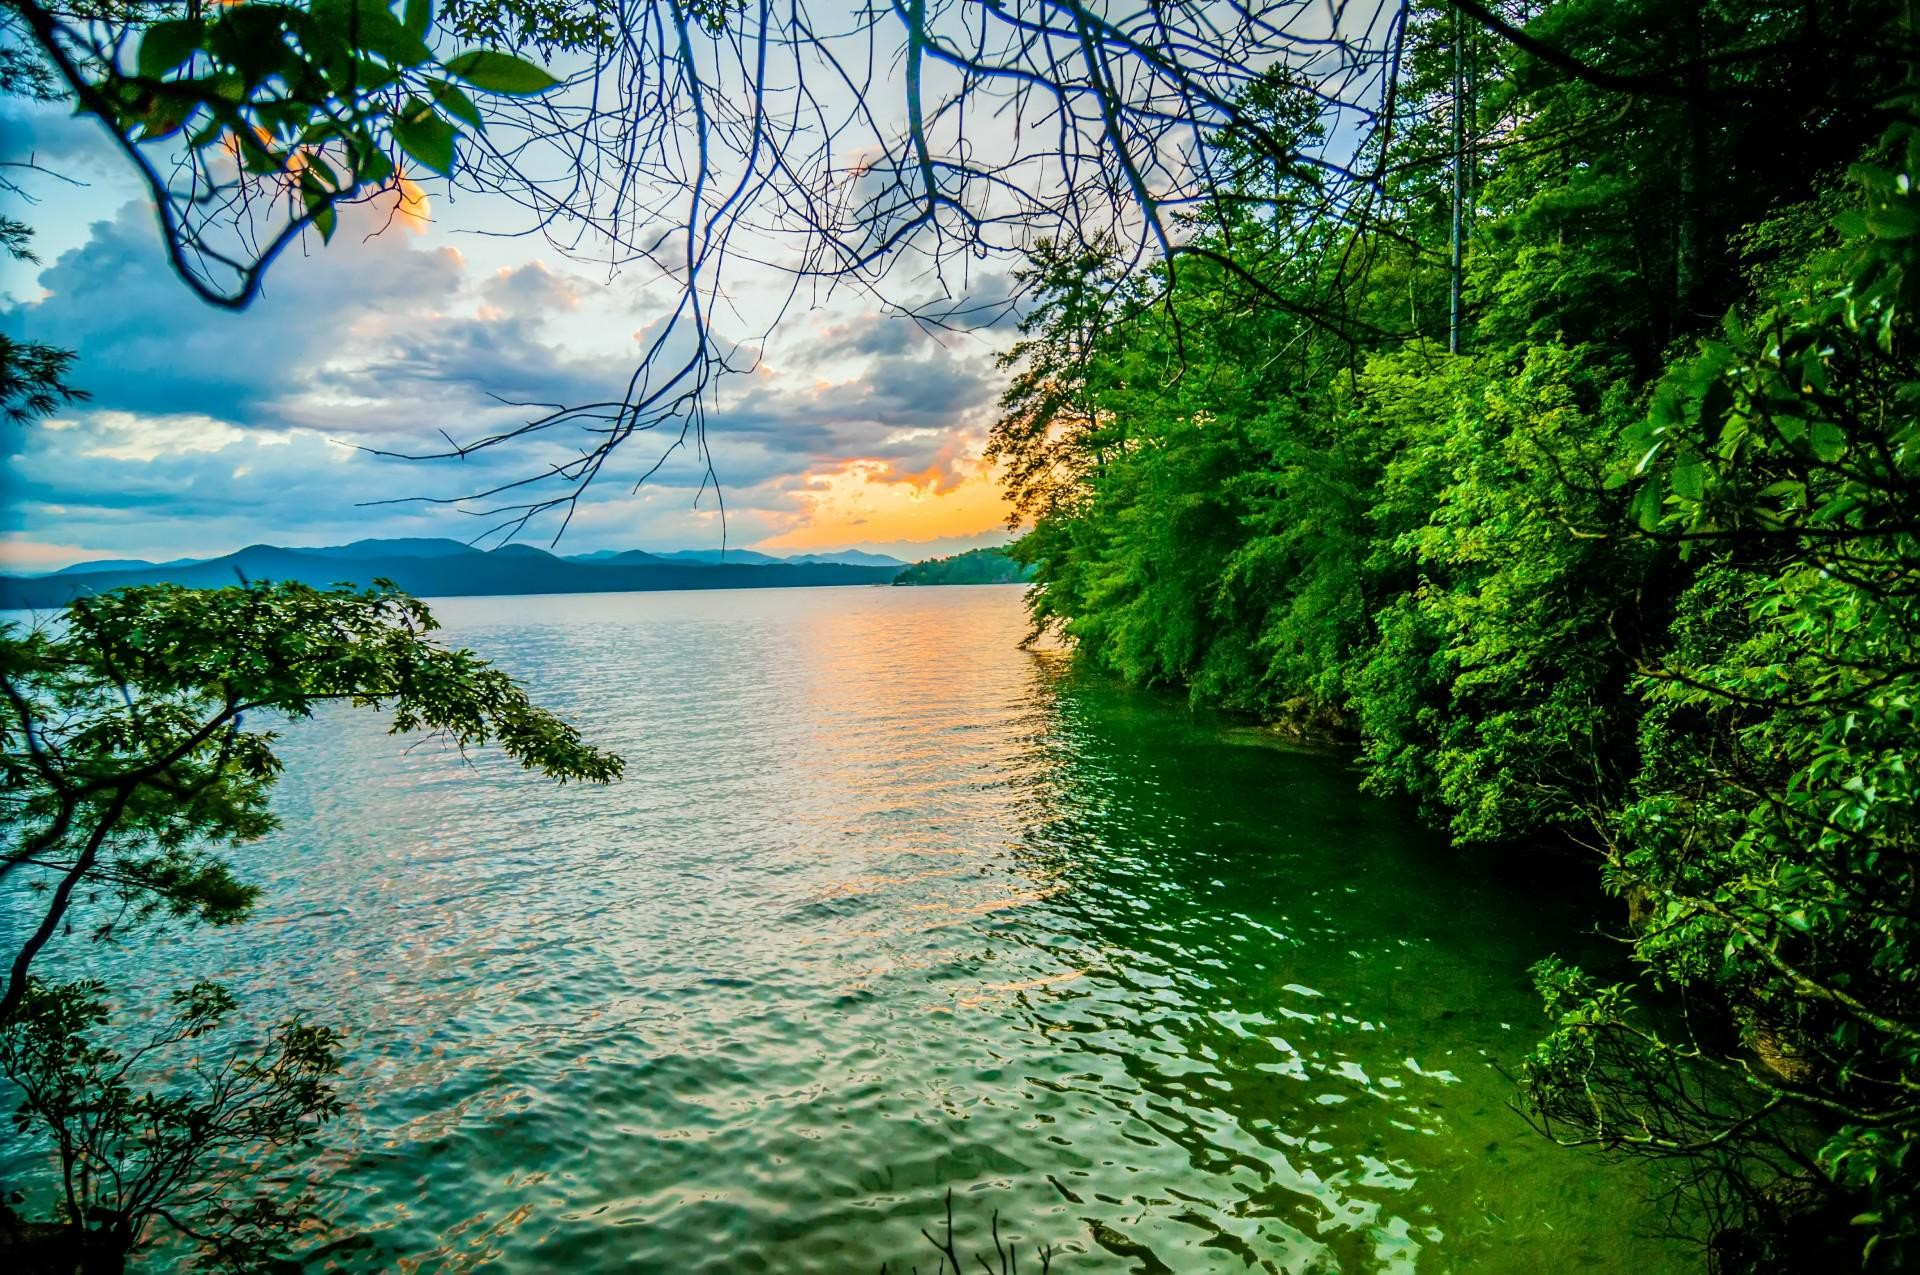 Scenery images wallpapers 60 images - Hd photos of scenery ...